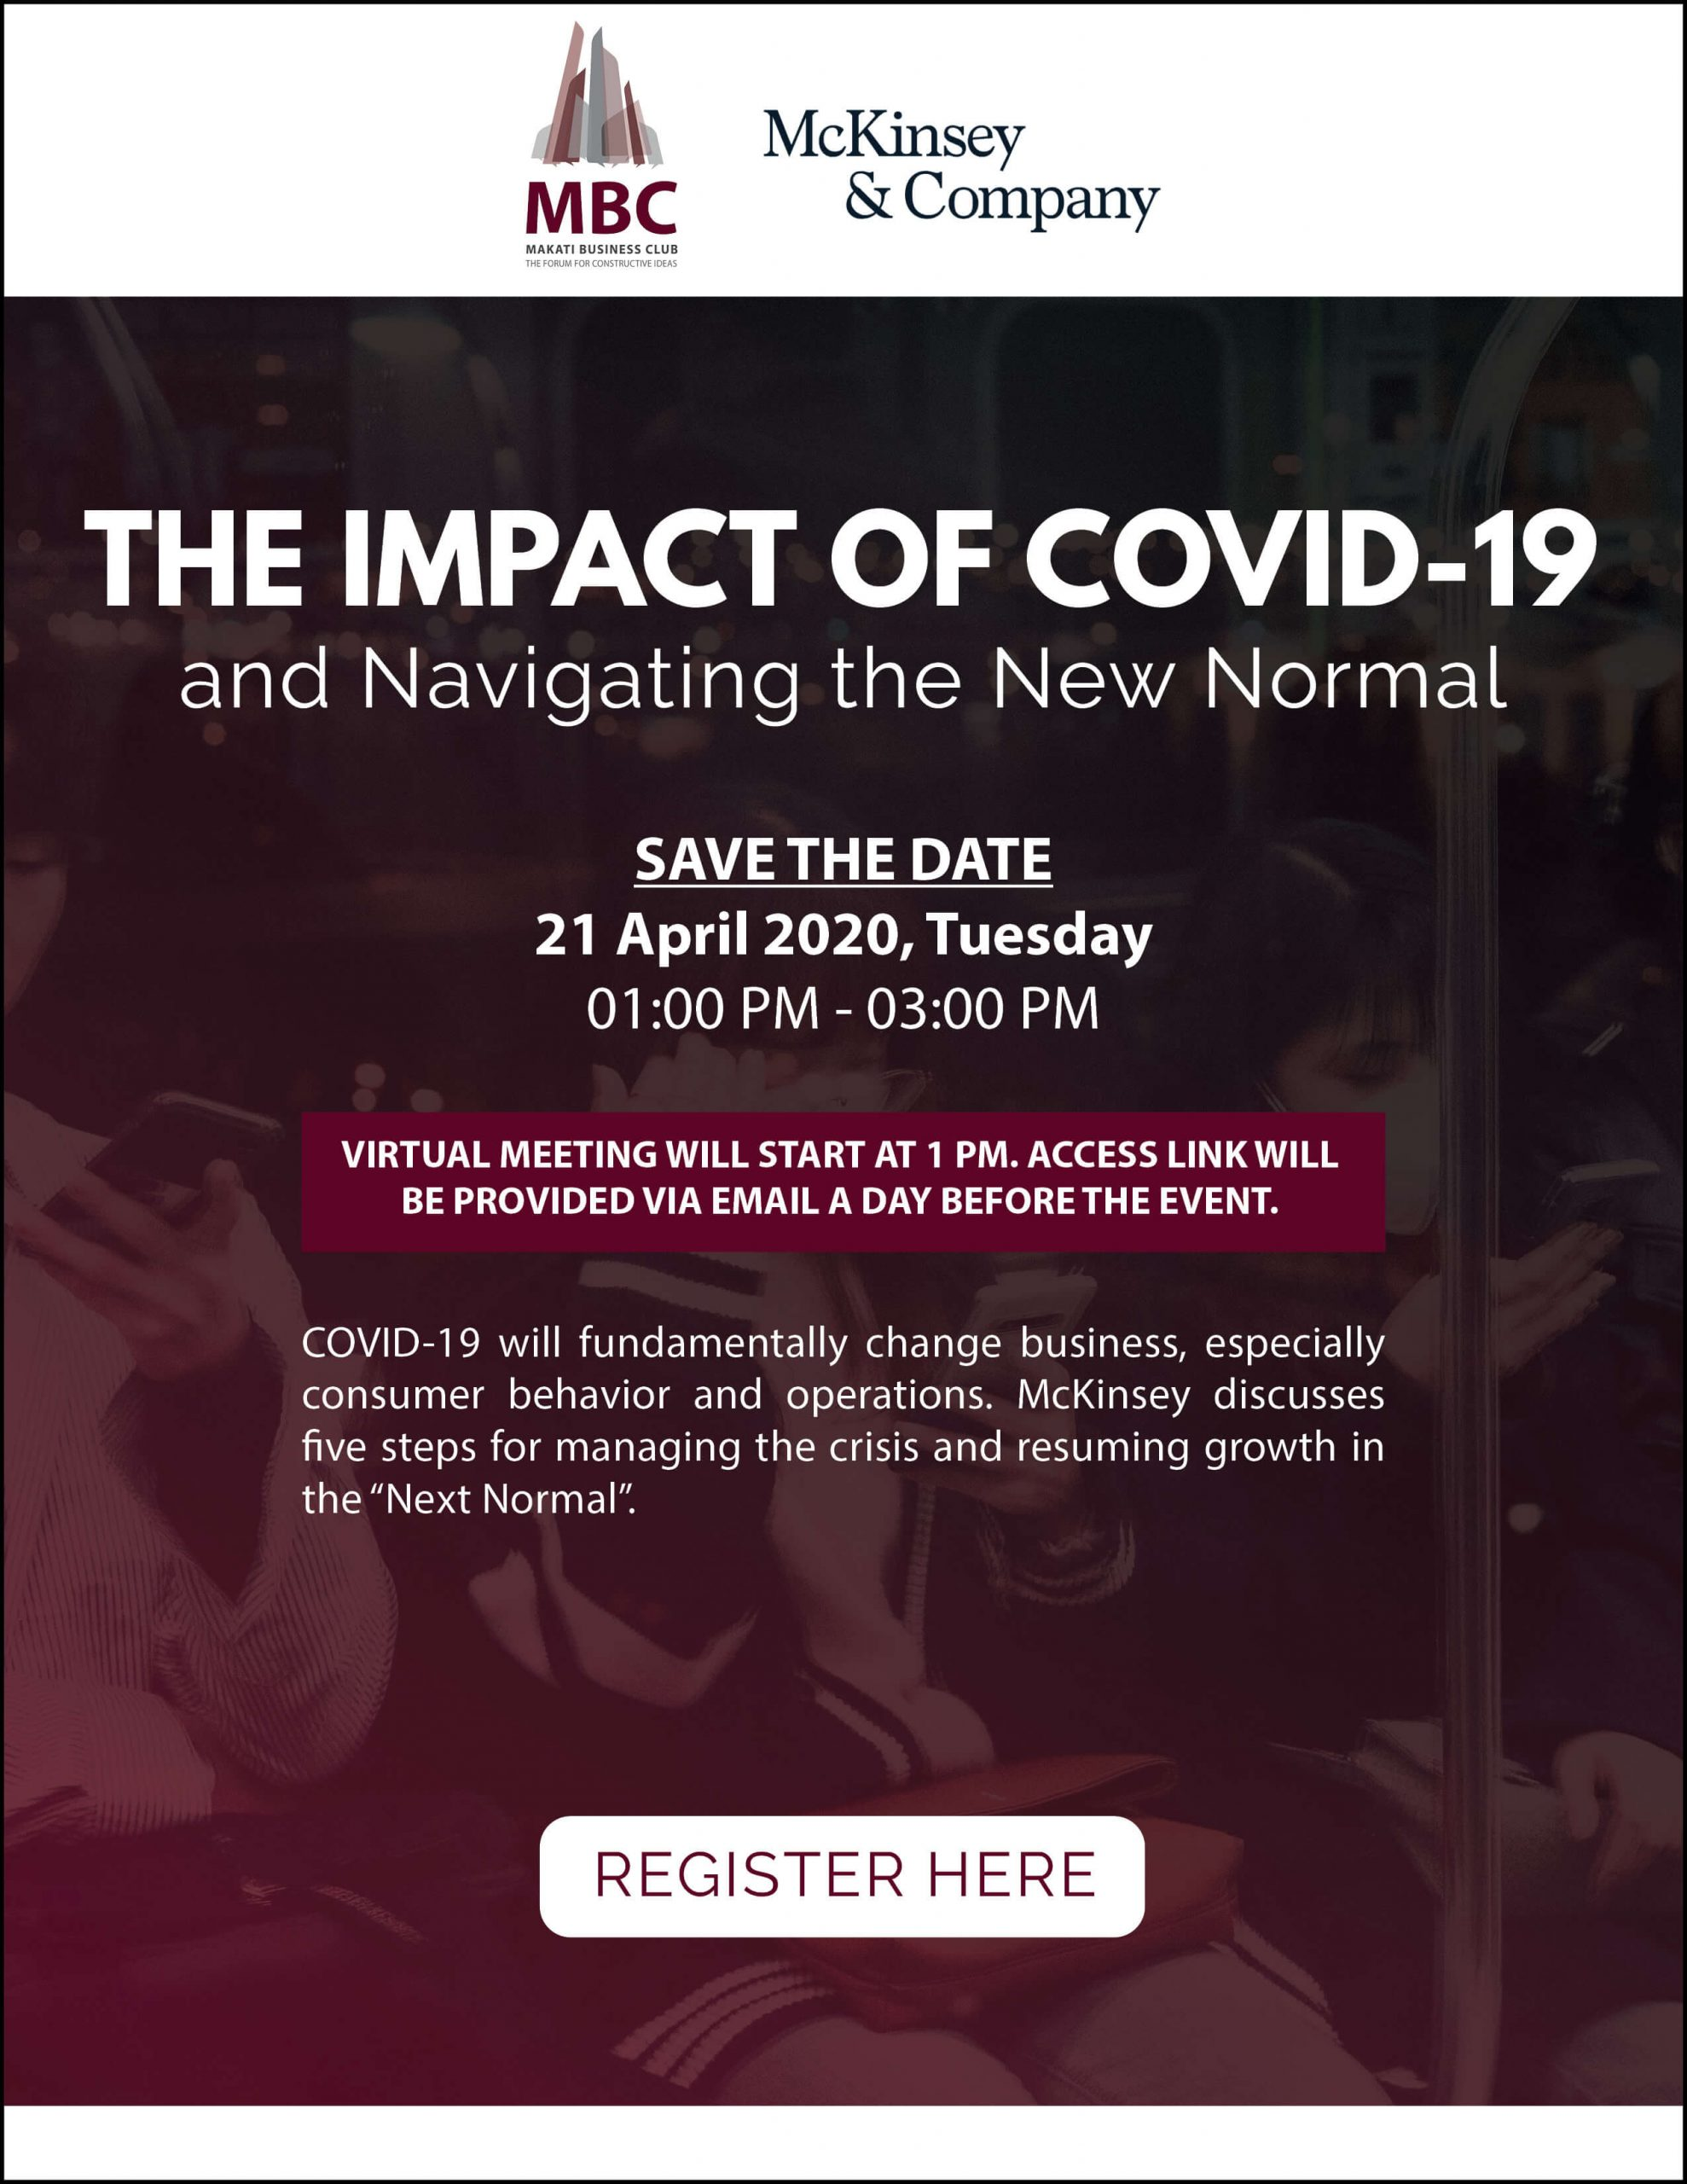 The Impact of COVID-19 and Navigating the New Normal